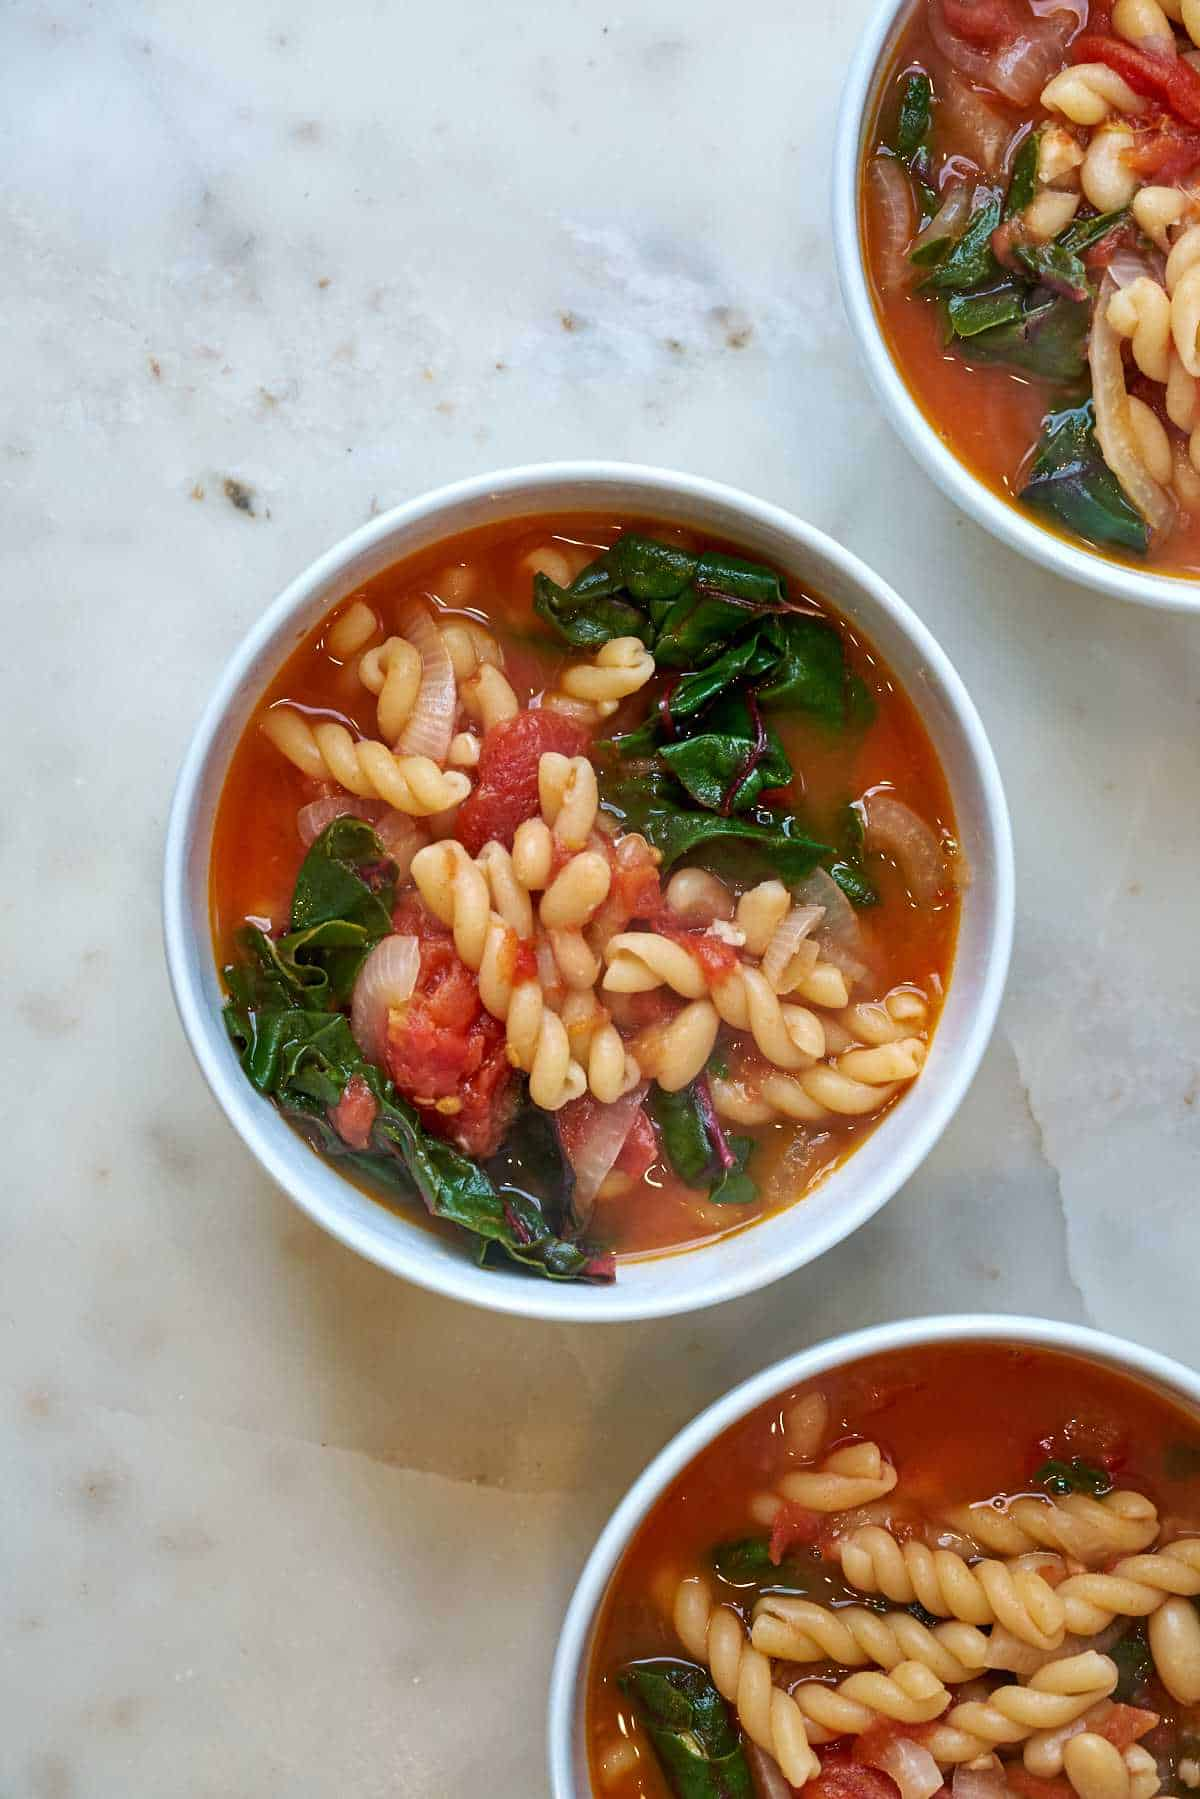 Three bowls of Bowl of red soup with noodles and greens.